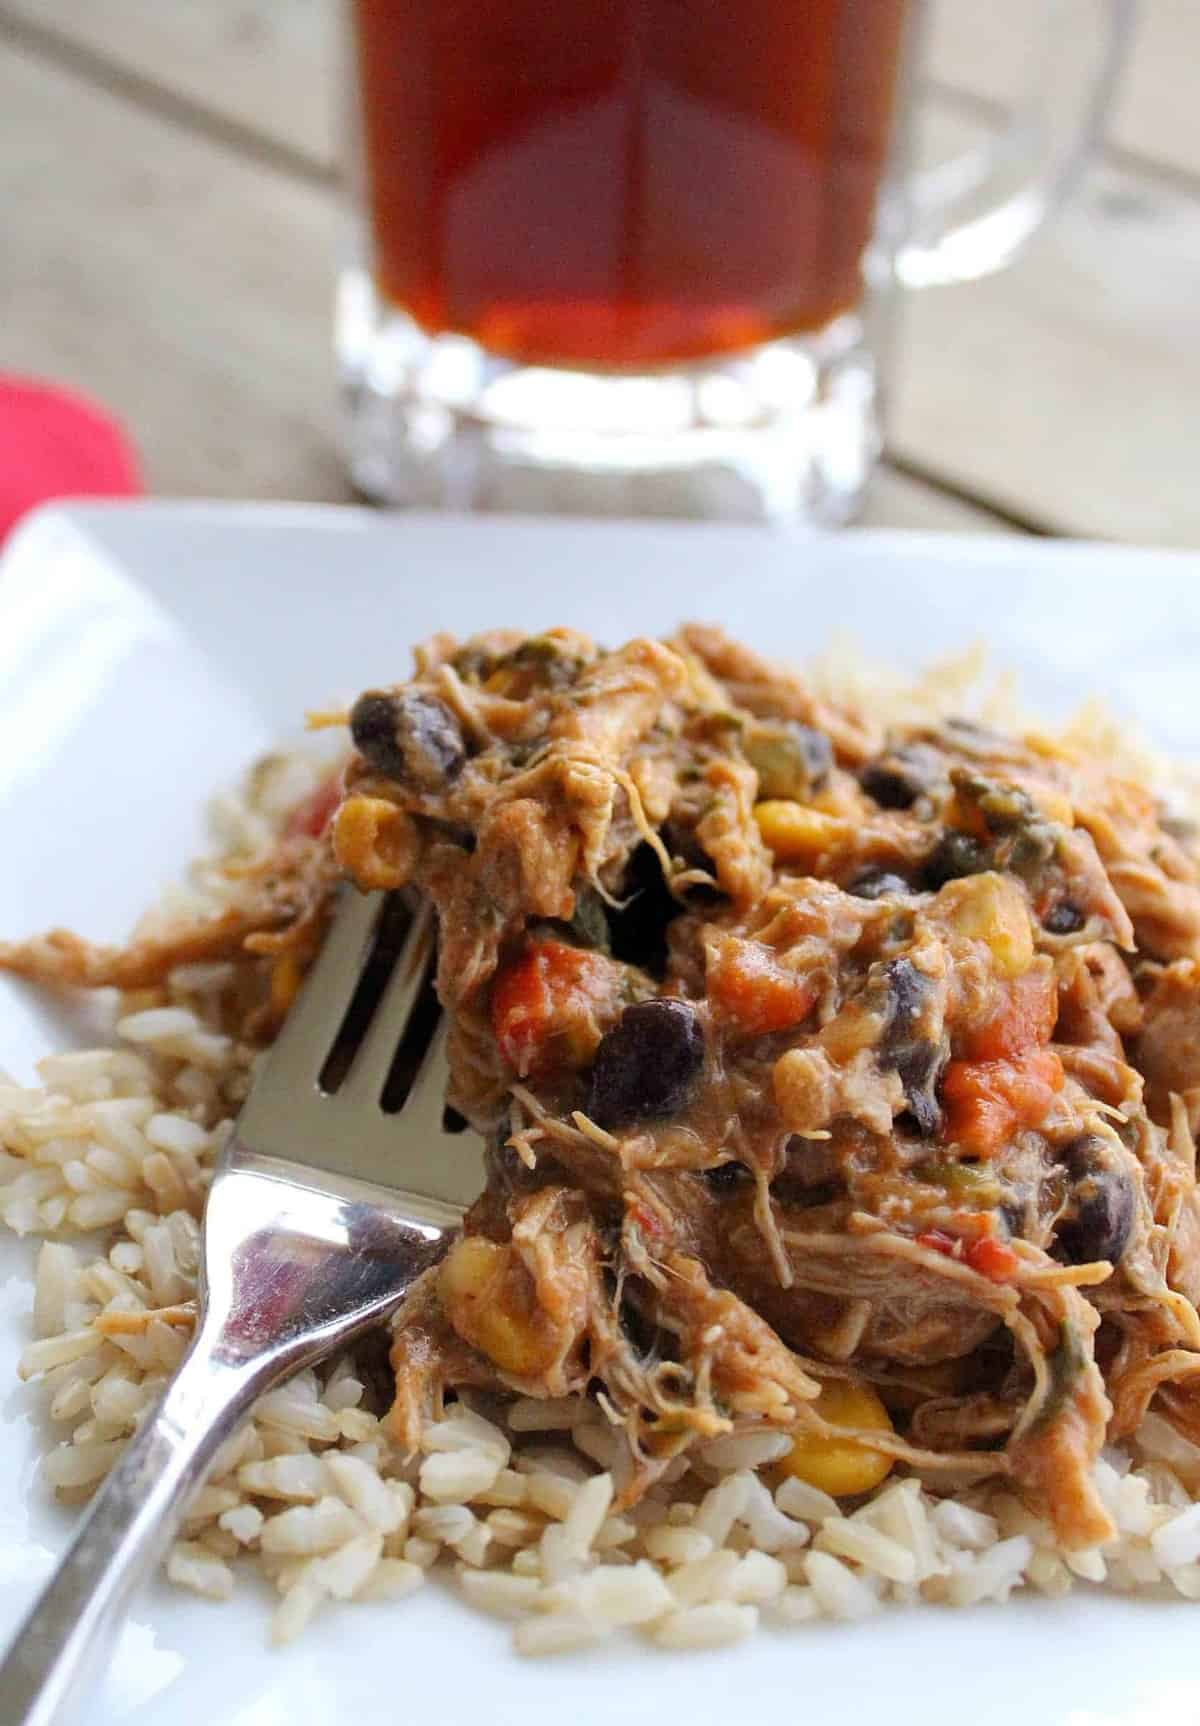 This slow cooker salsa chicken is easy to make and very versatile. Use it in burritos or enchiladas or over rice. Get the easy recipe on RachelCooks.com